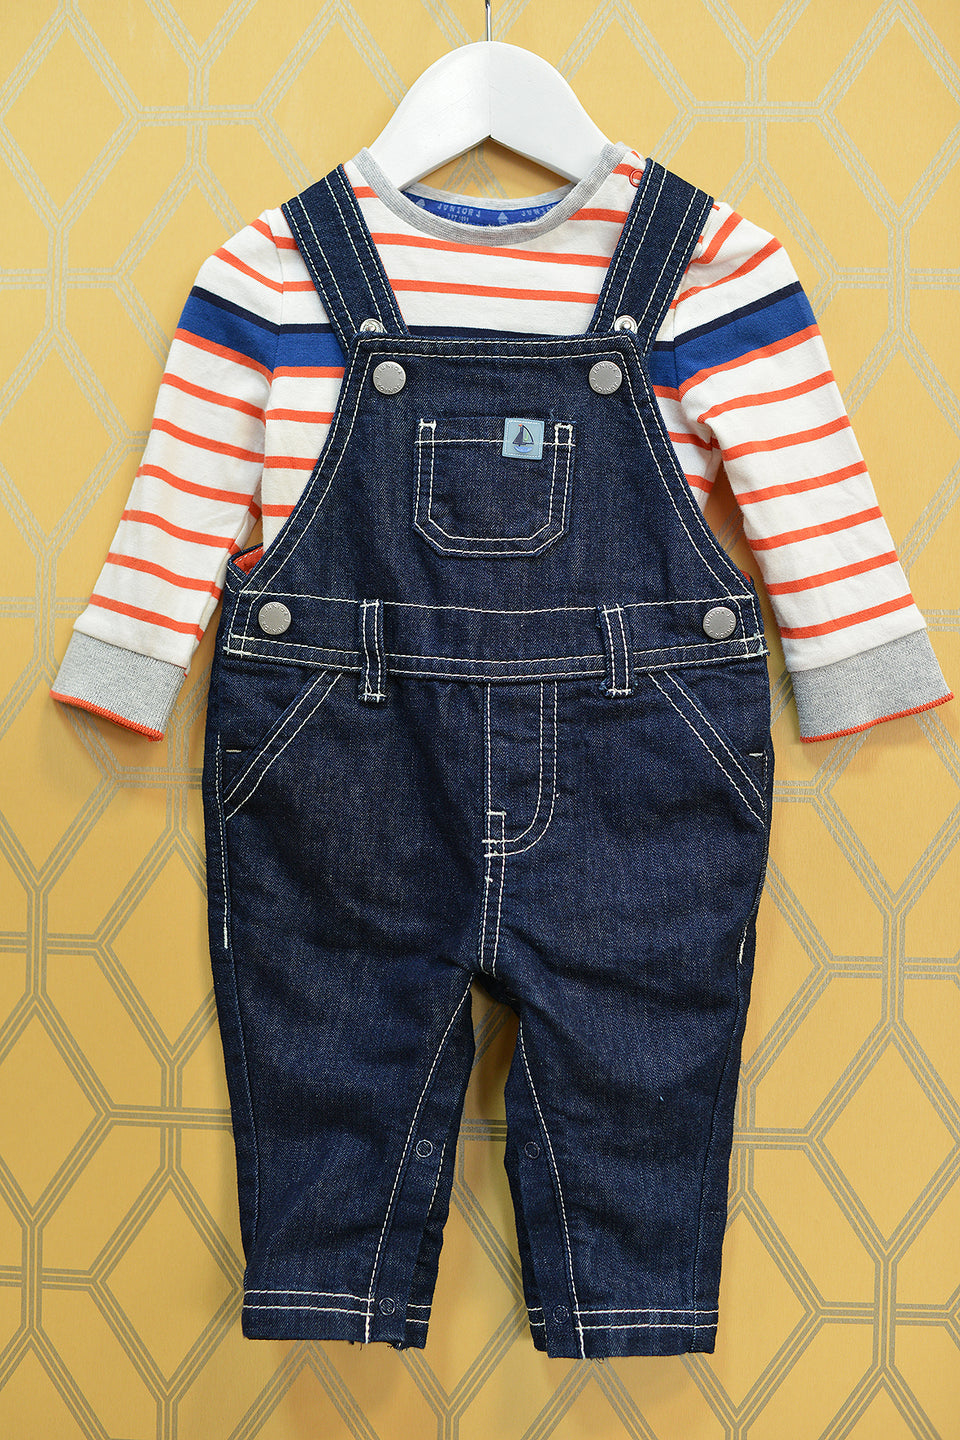 JASPER CONRAN Junior Boys Nautical Top & Dungaree Set, Size 3-6 Months. New with tags.